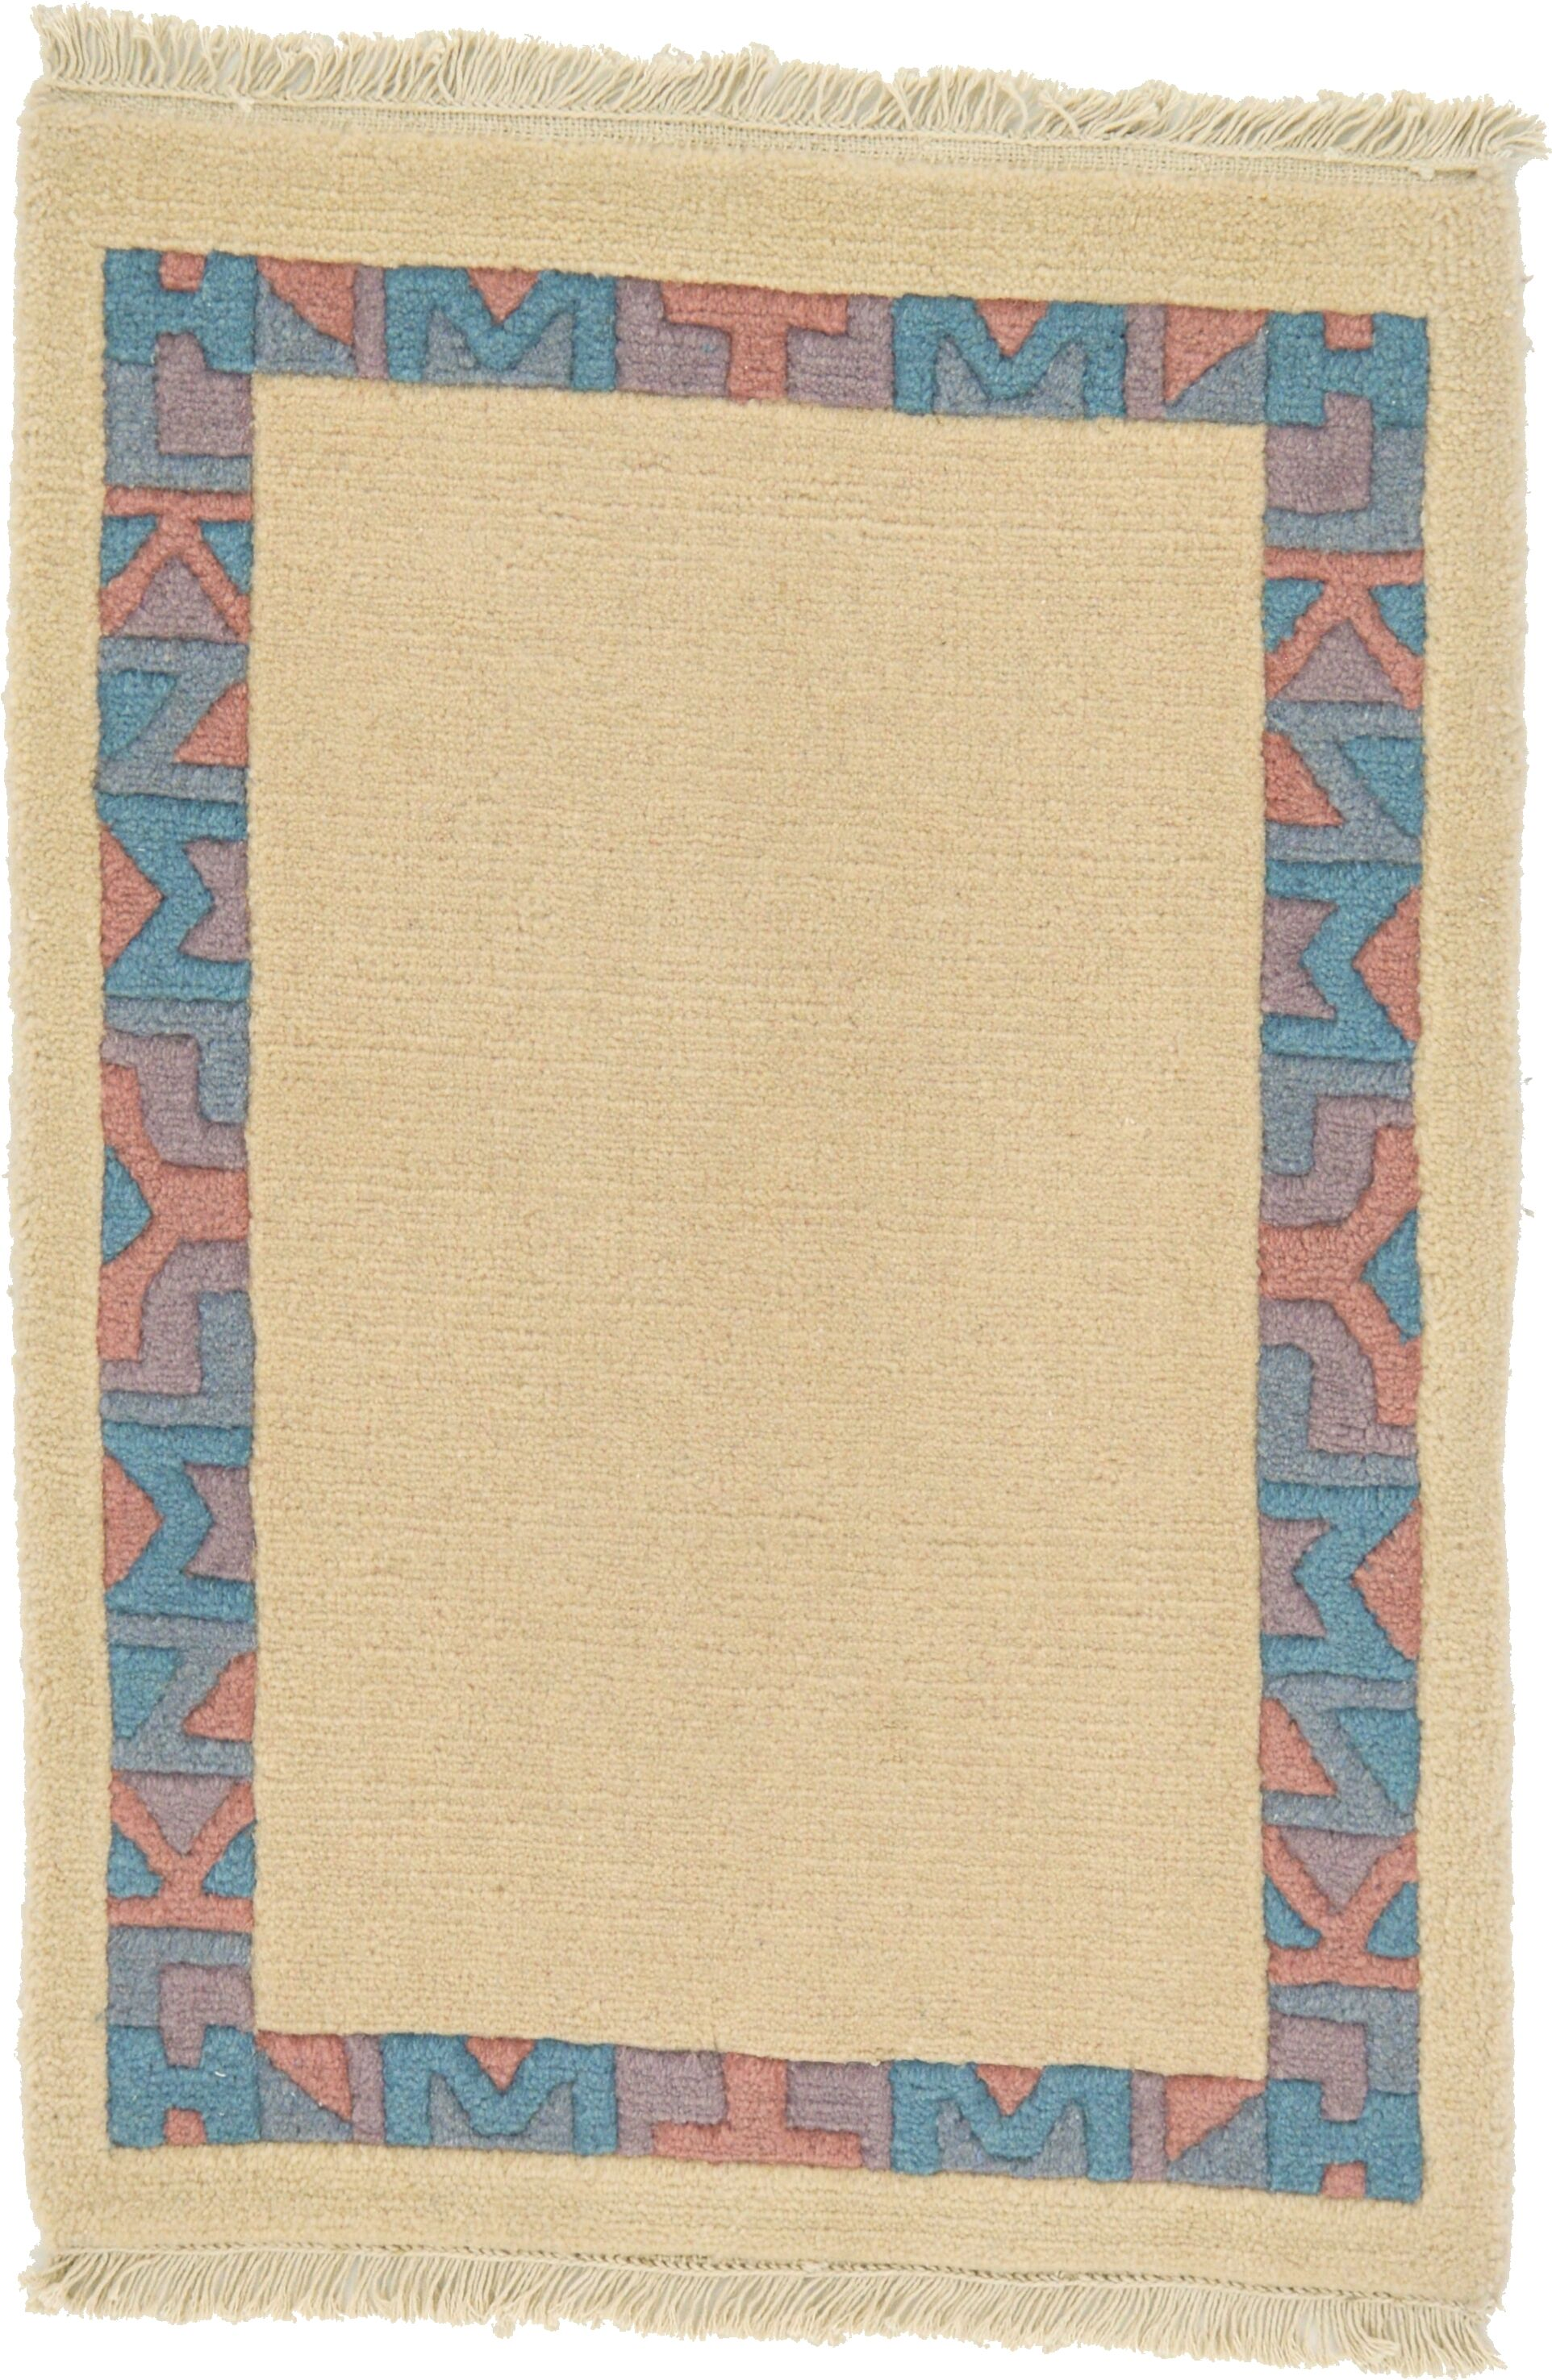 One-of-a-Kind Dorcaster Hand-Knotted 2' x 3' Wool Light Beige/Blue Area Rug